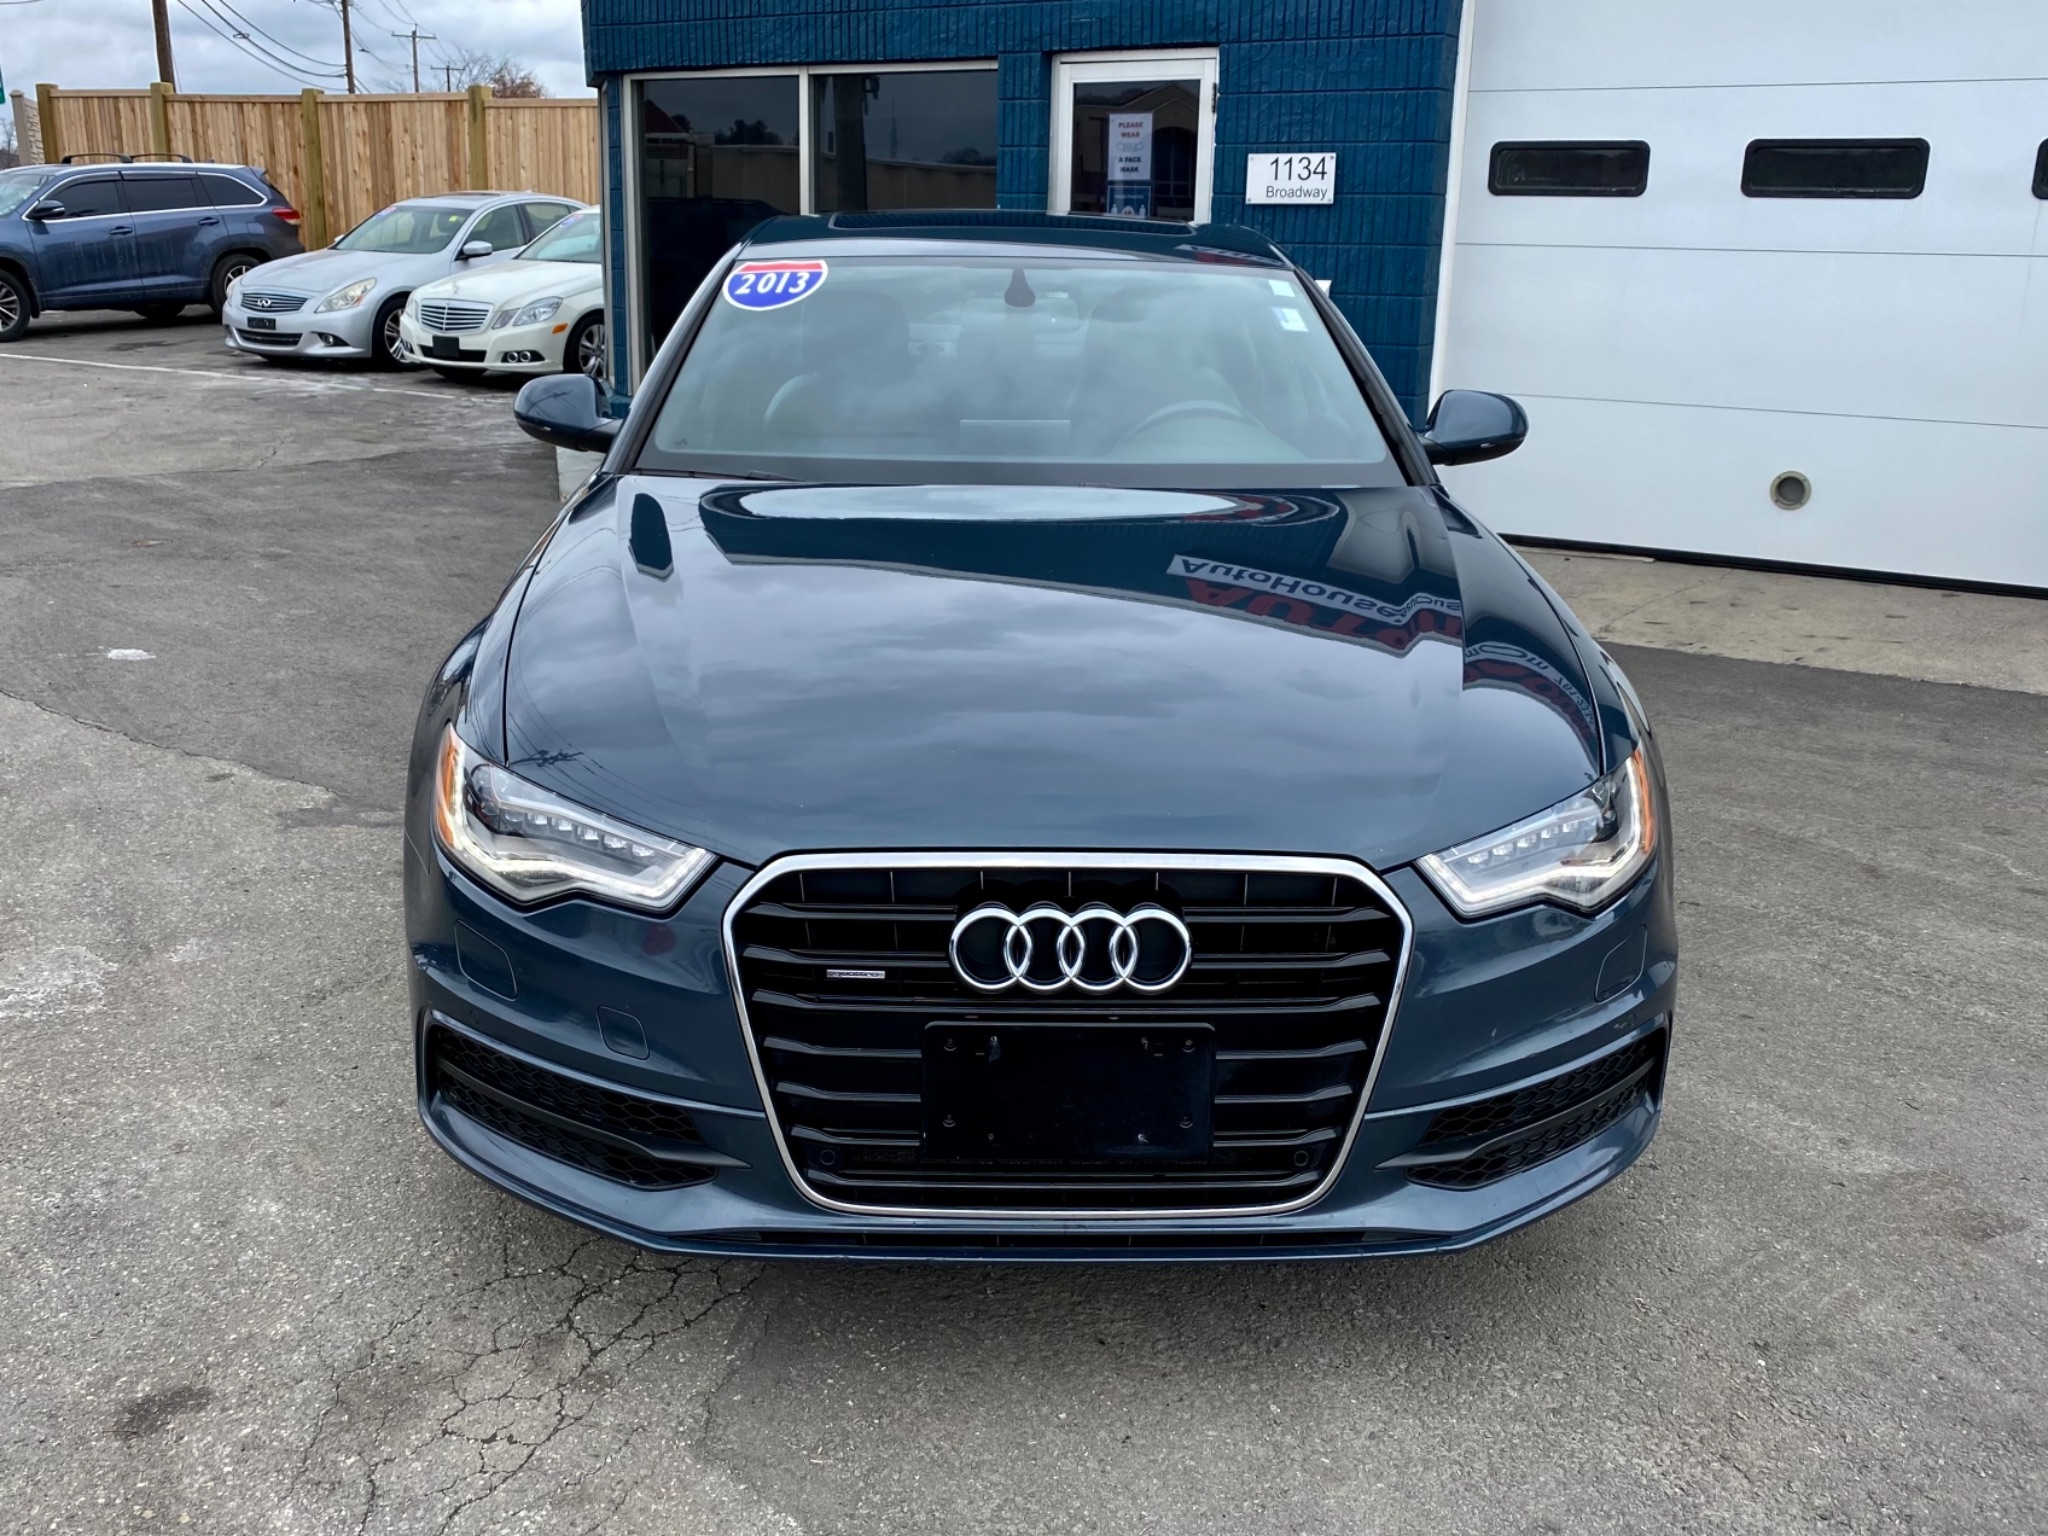 2013 Audi A6 3.0T Prestige Supercharged